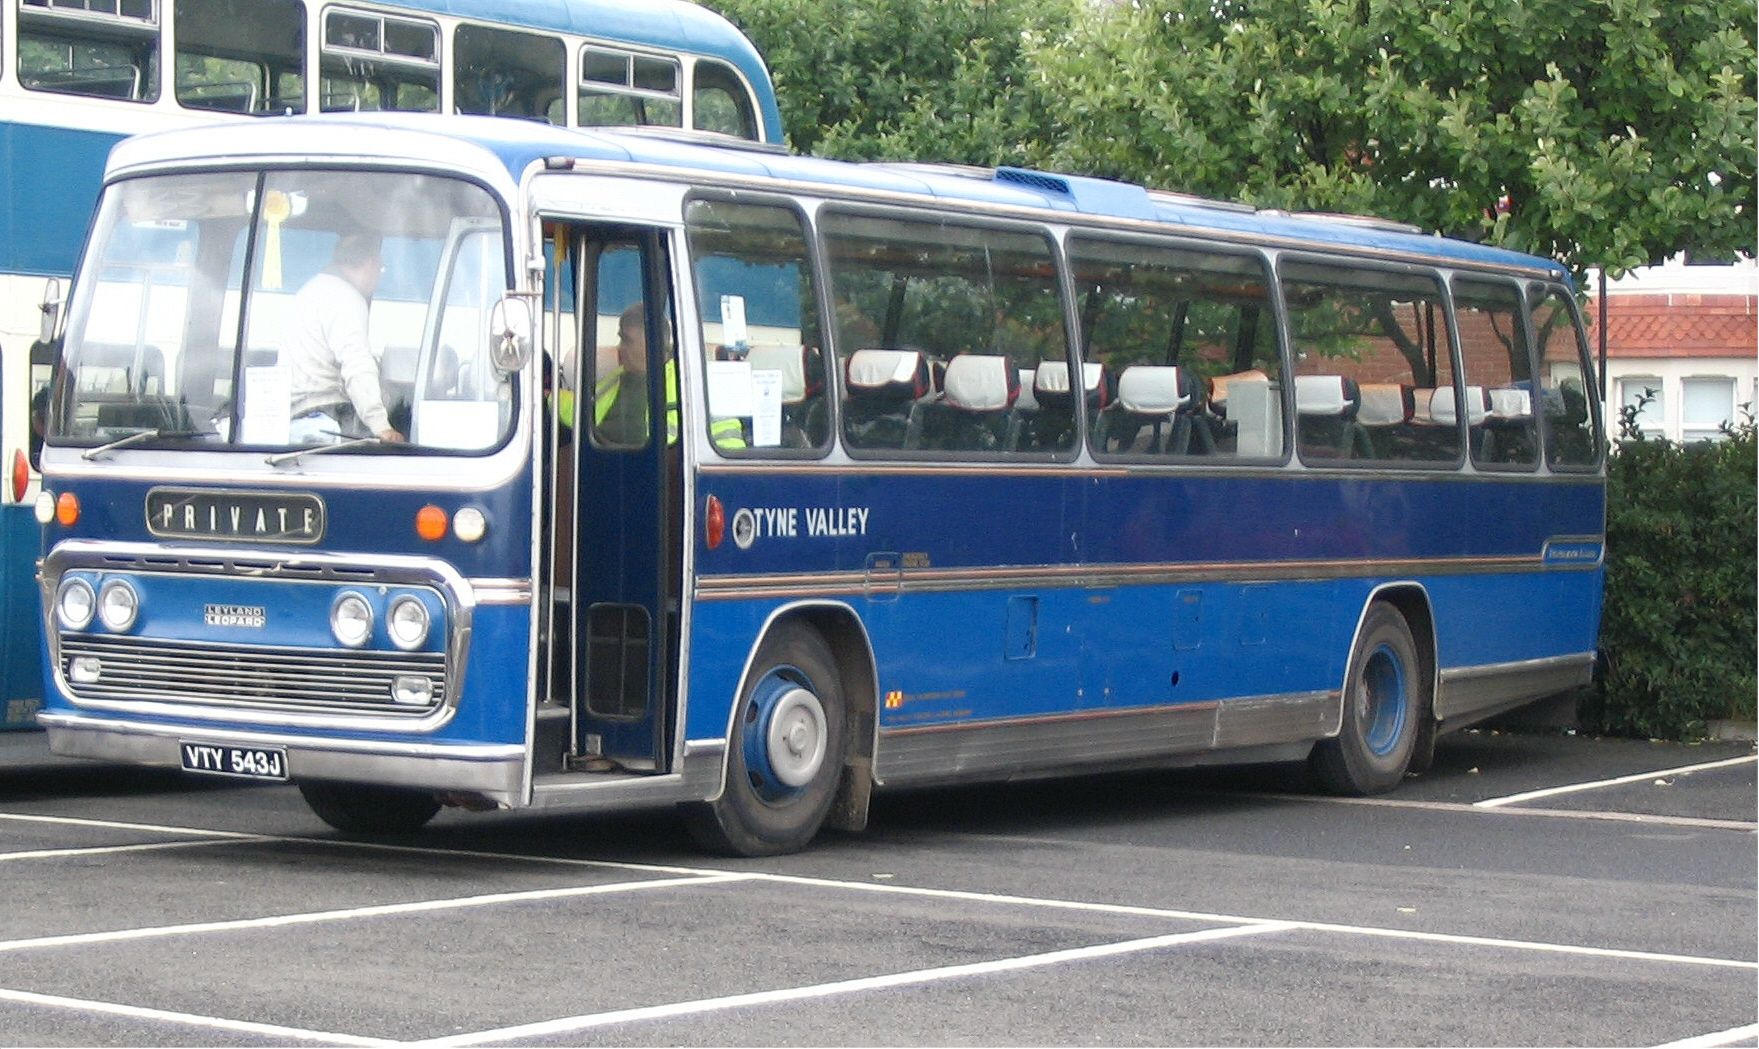 Tyne Valley blue bus